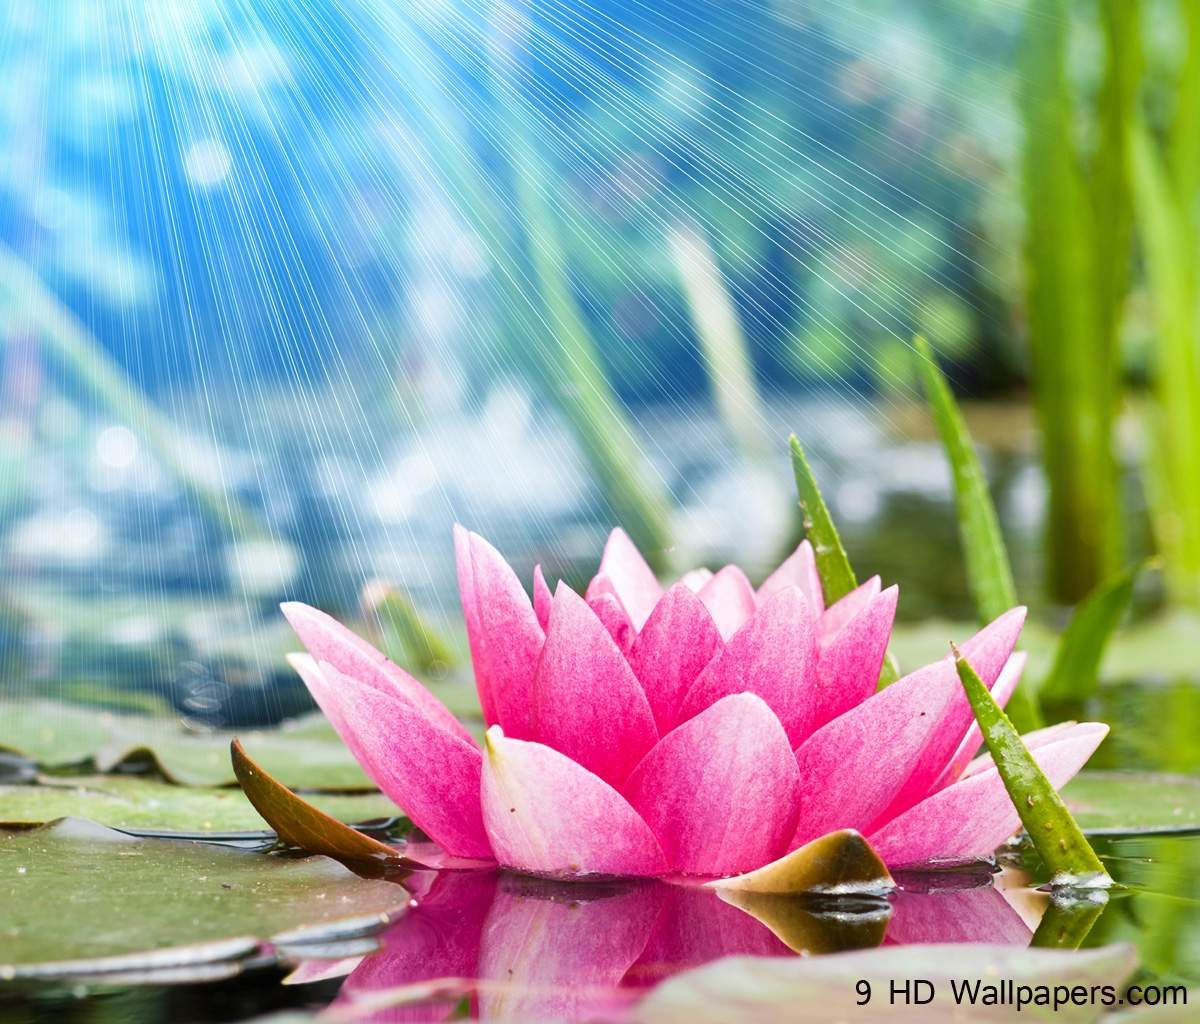 Lotus Flower HD Wallpapers, Flowers Images And Photos – Full HD …